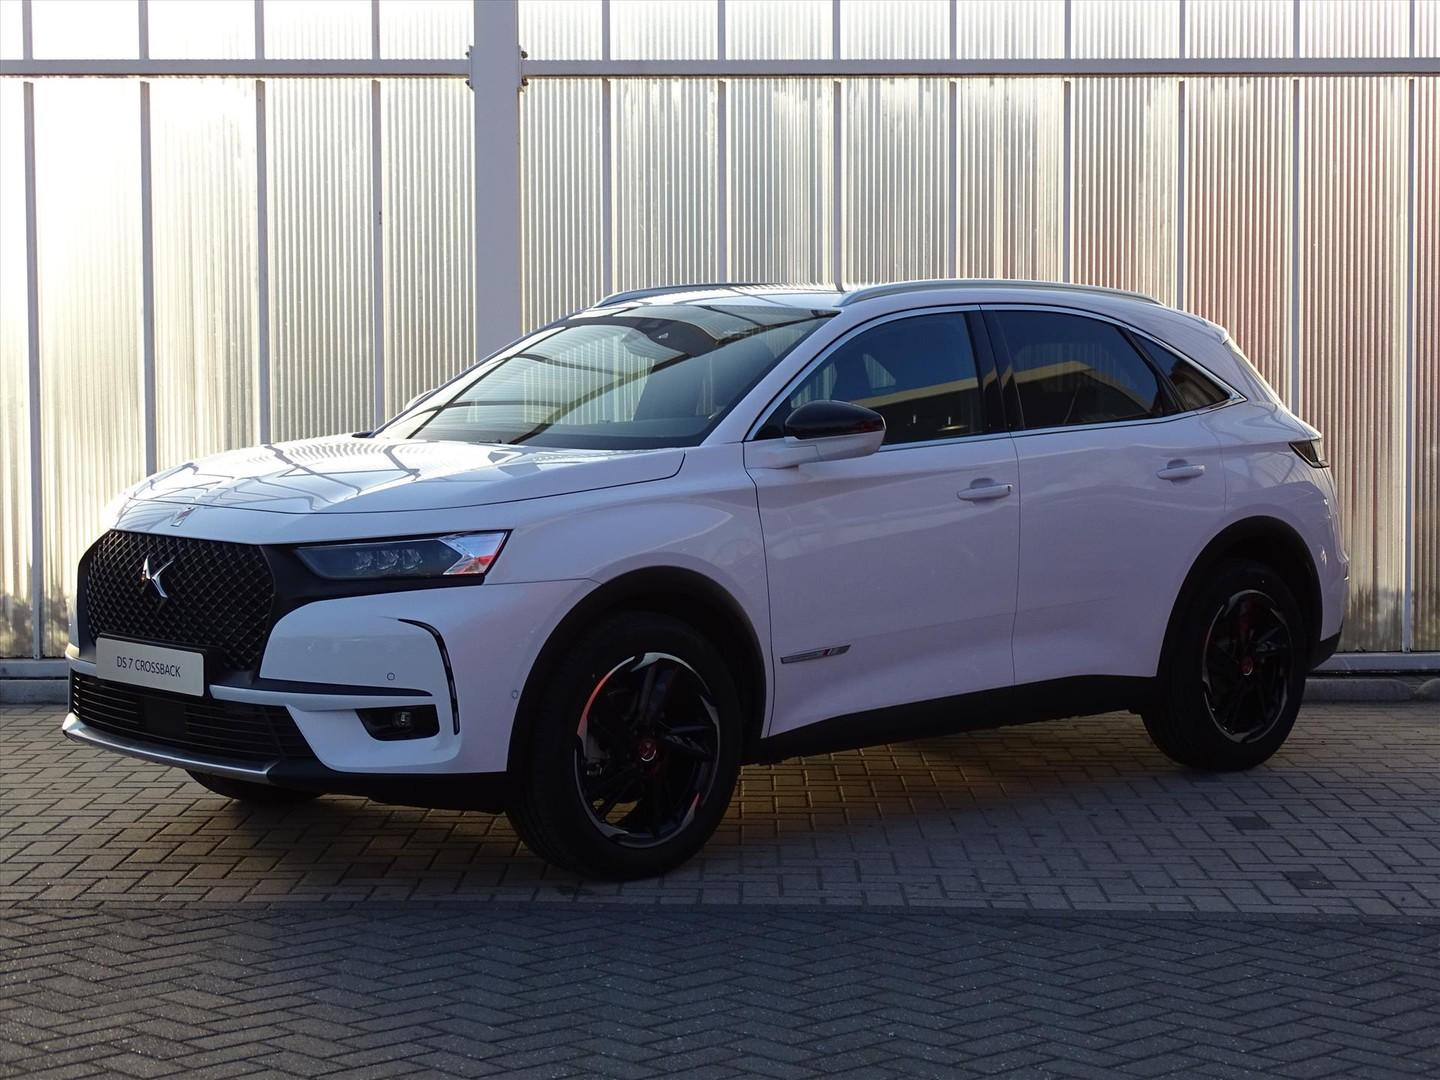 Ds Ds 7 crossback 1.2 130pk performance/pano/focal/19inch/full led